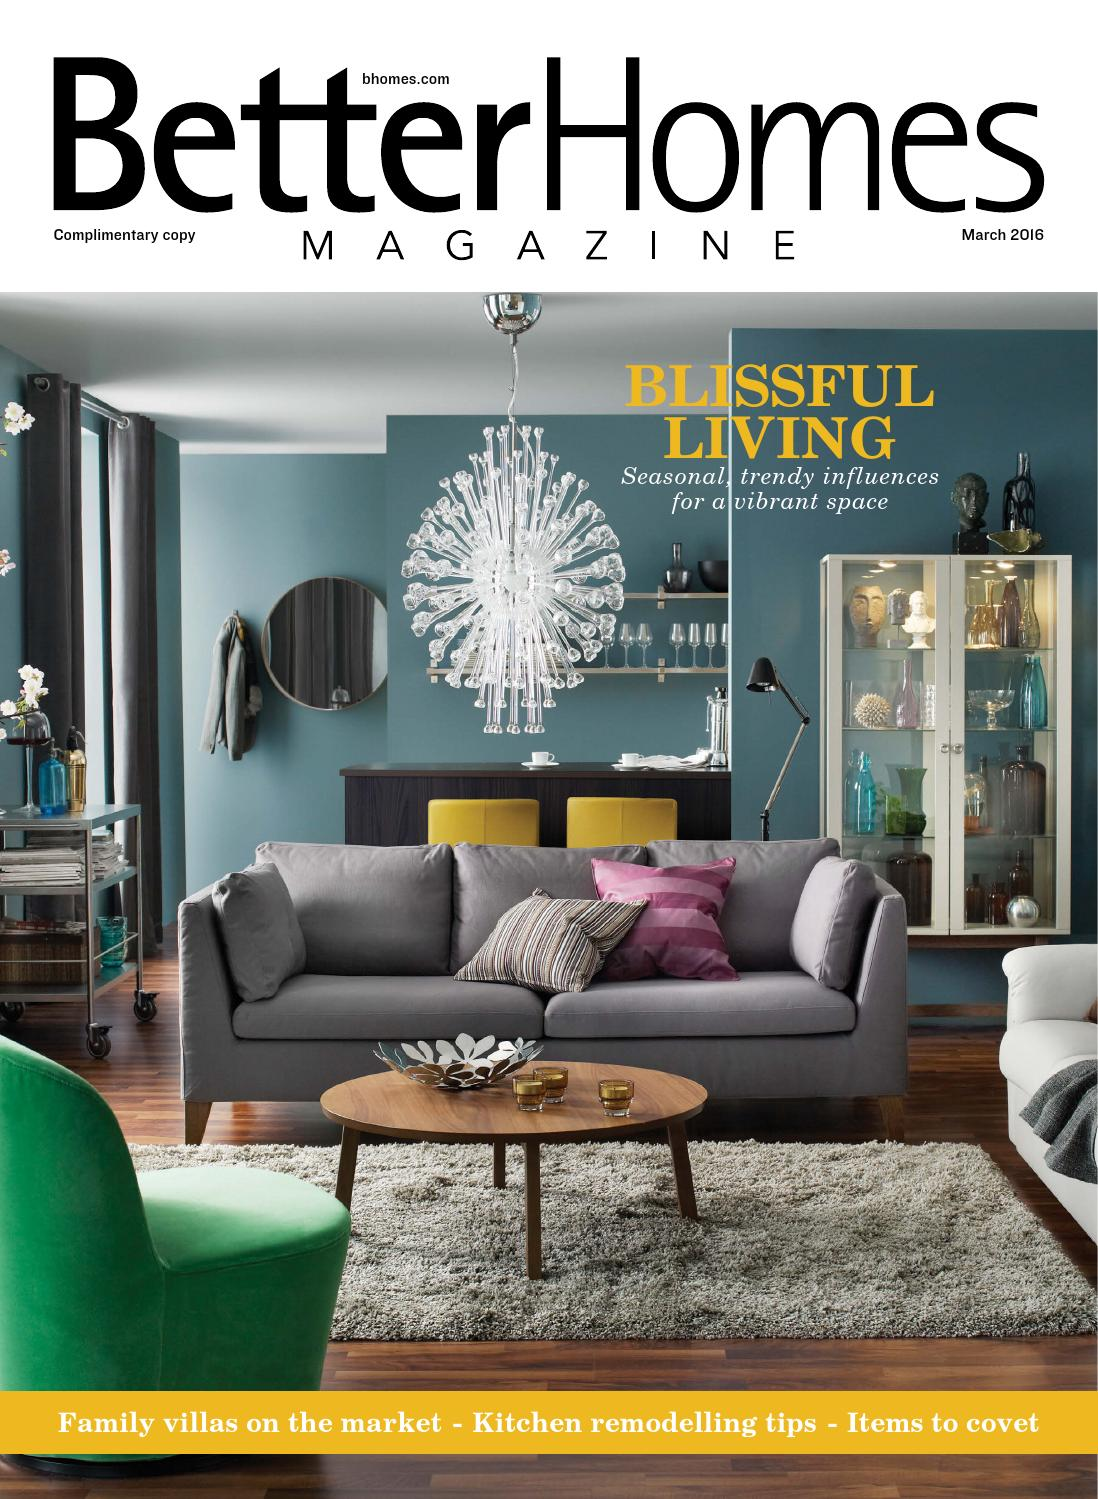 Better Homes Magazine Mar16 By Hot Media